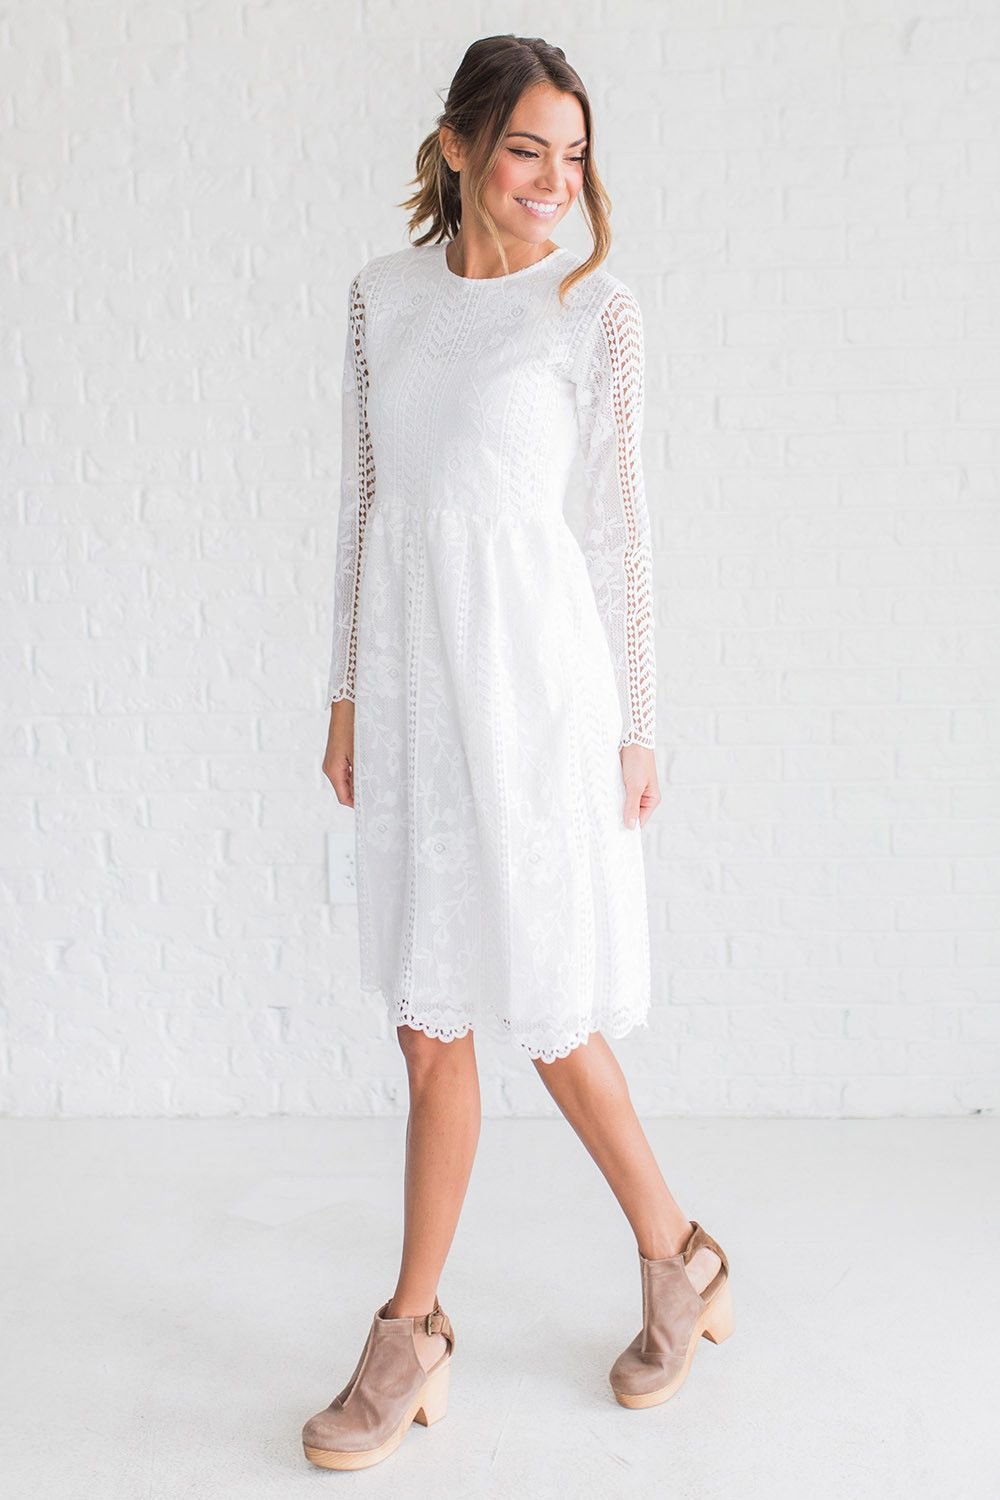 Details long sleeve lace a line dress cinched waist and